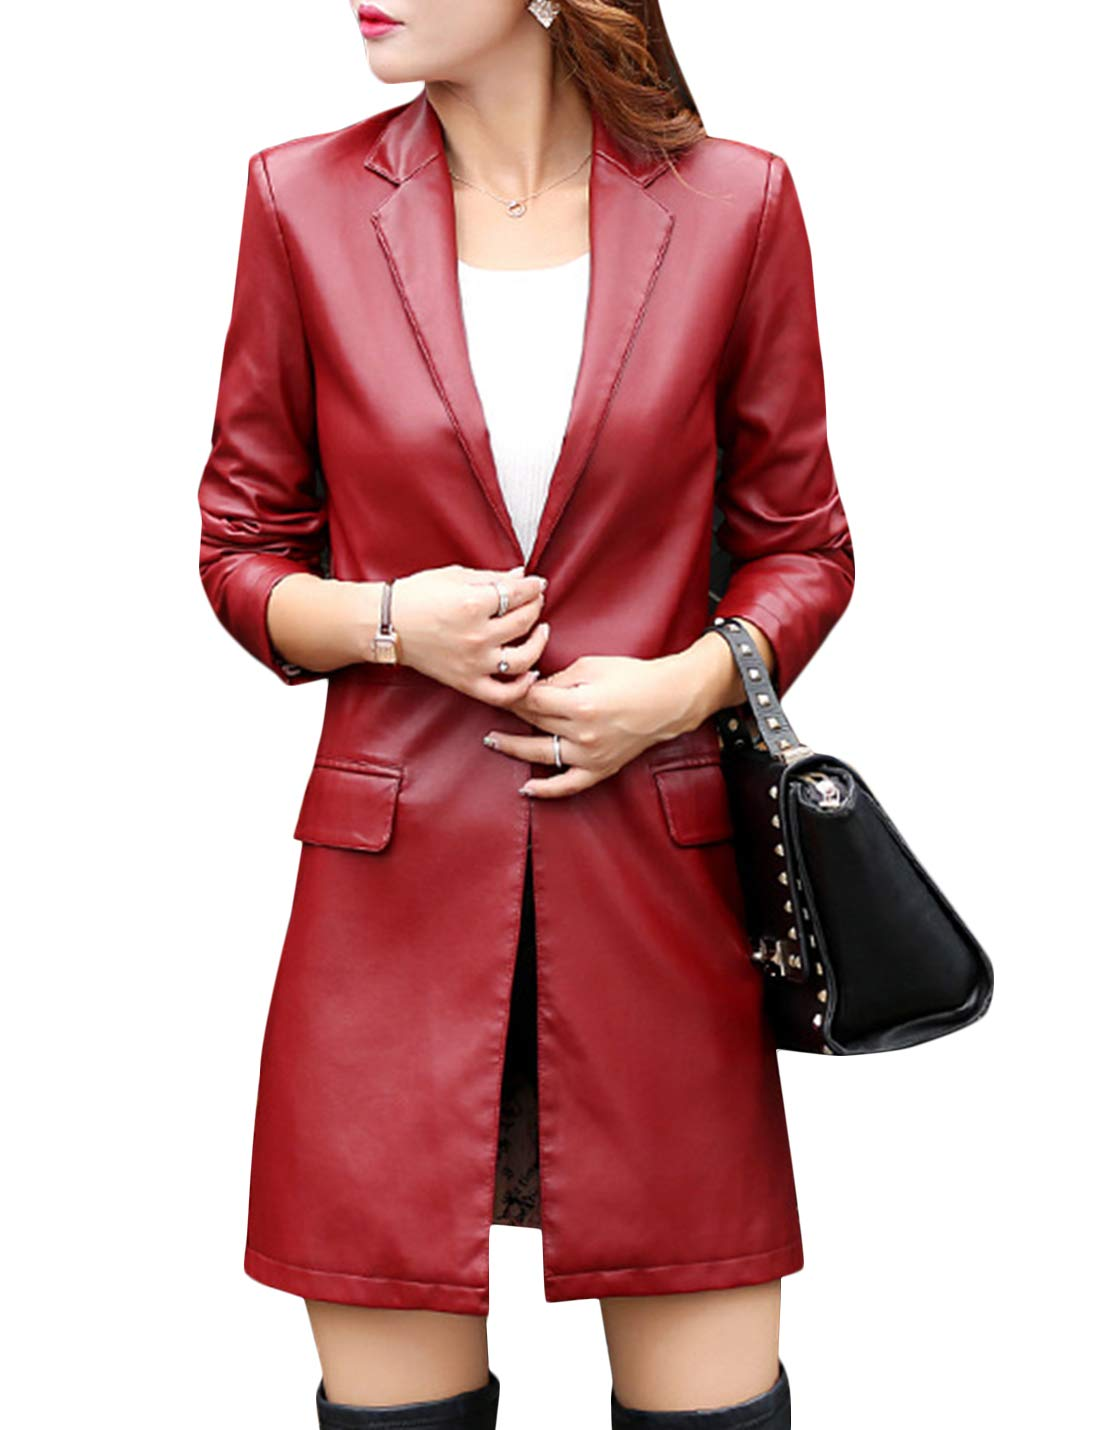 Tanming Womens Casual Lapel Long Leather Jacket Suit Coat Windbreaker Trench Coat (Wine Red, XX-Large) by Tanming